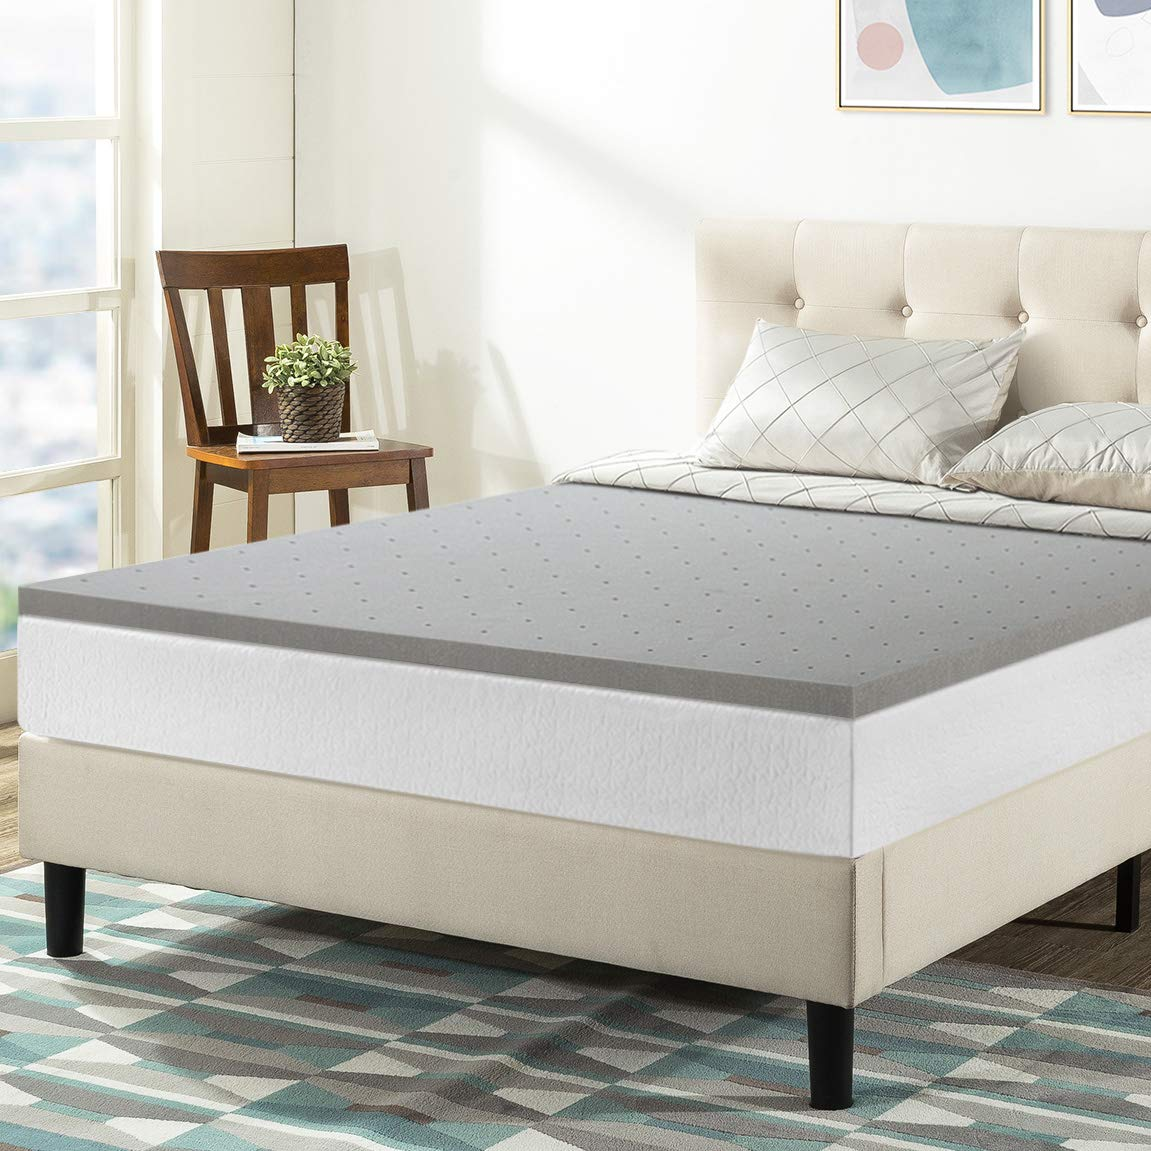 Best Price Mattress Full Mattress Topper - 1.5 Inch Bamboo Charcoal Infused Memory Foam Bed Topper Cooling Mattress Pad, Full Size by Best Price Mattress